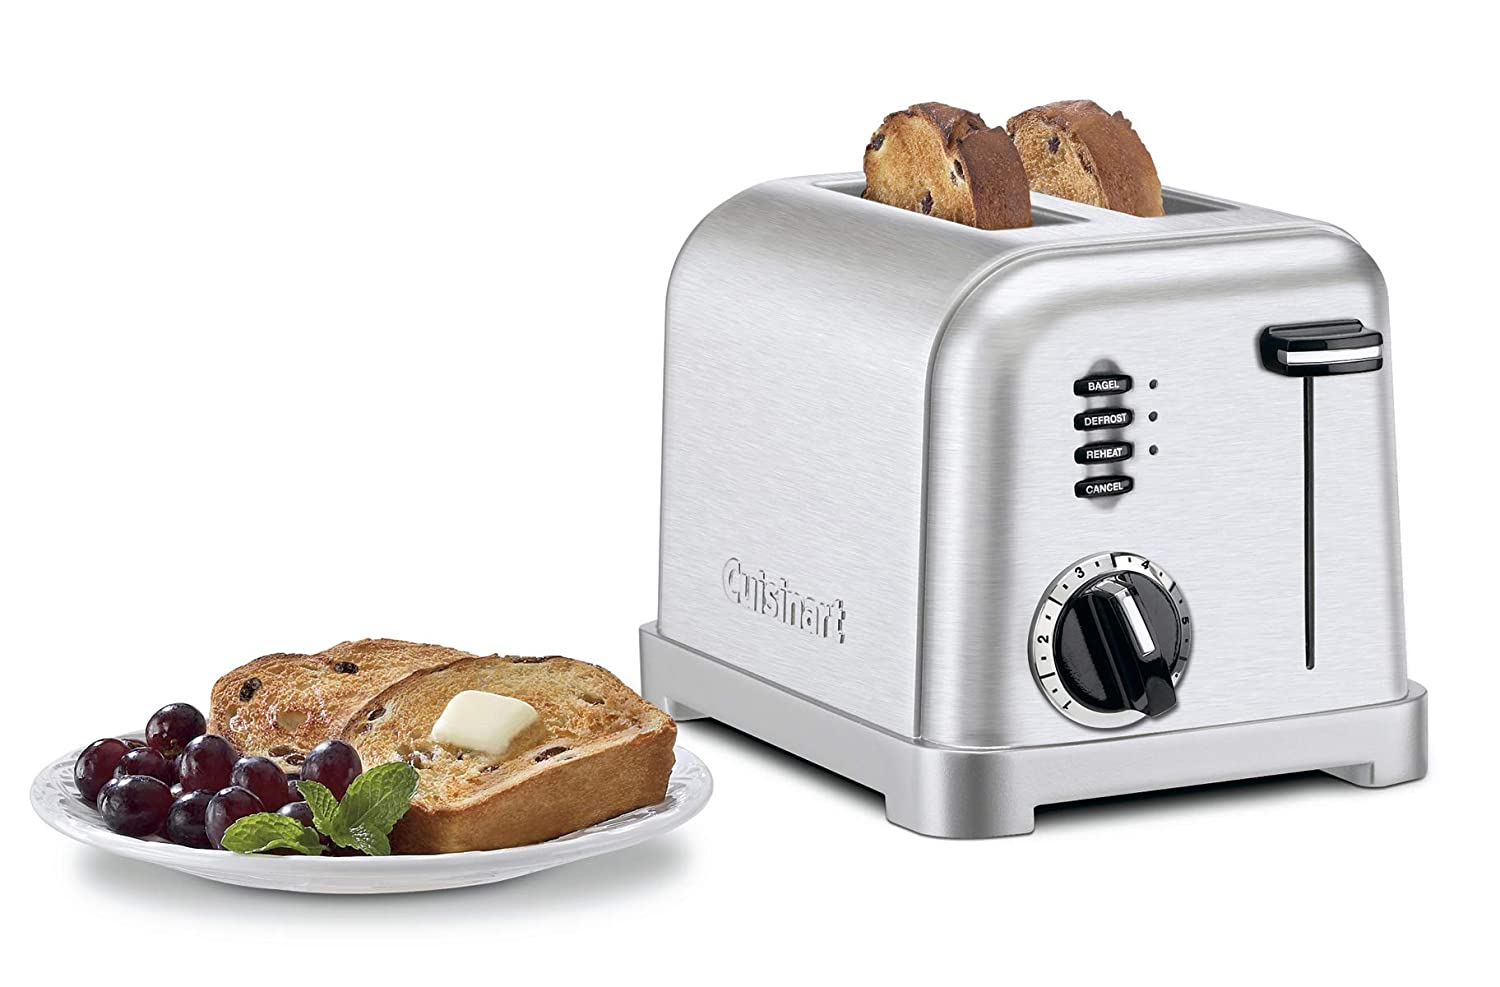 7. Cuisinart CPT-160 Metal Classic 2-Slice Toaster, Brushed Stainless